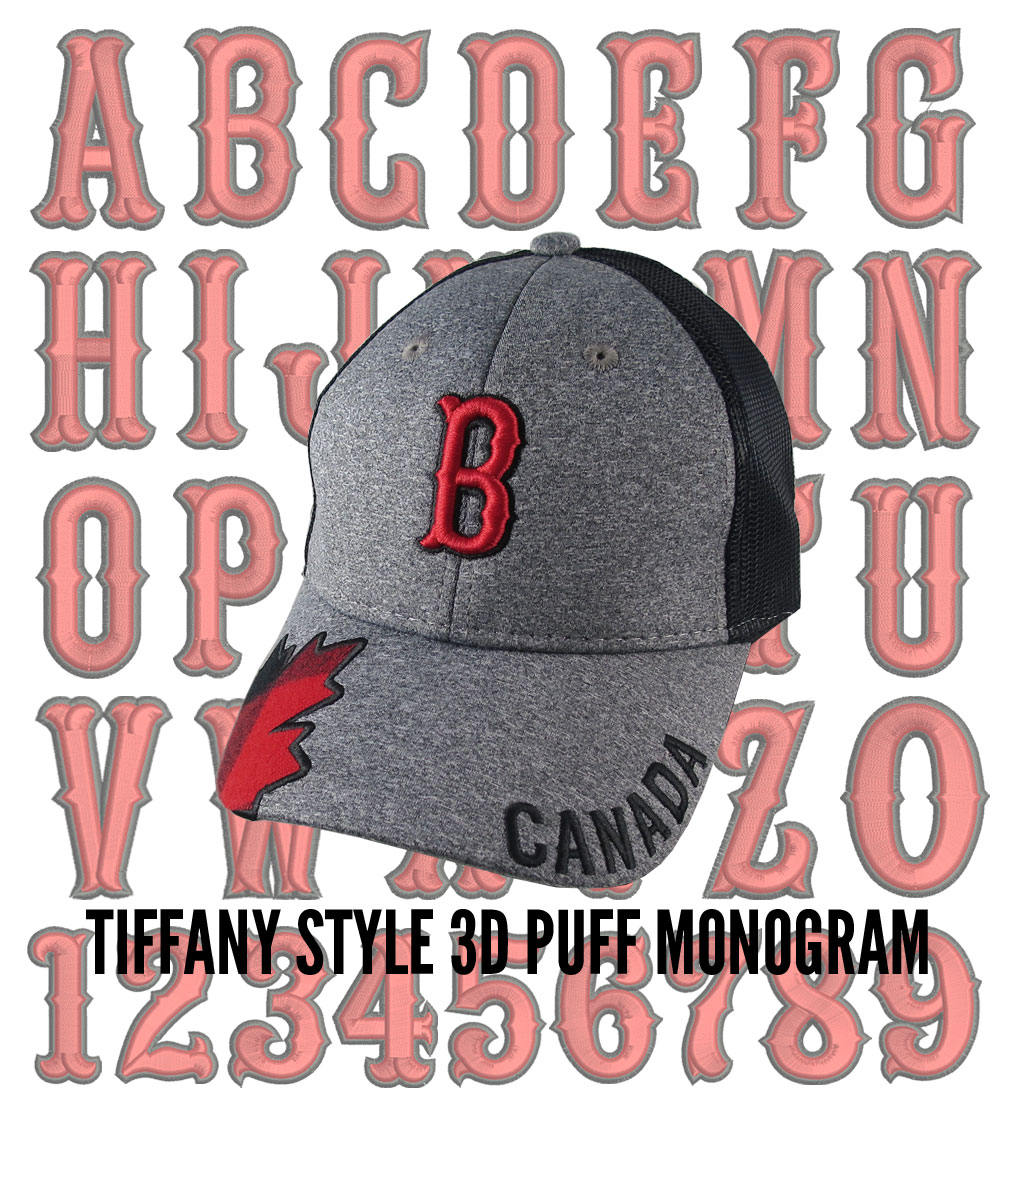 Your Custom Personalized 3D Puff Monogram Embroidery on an